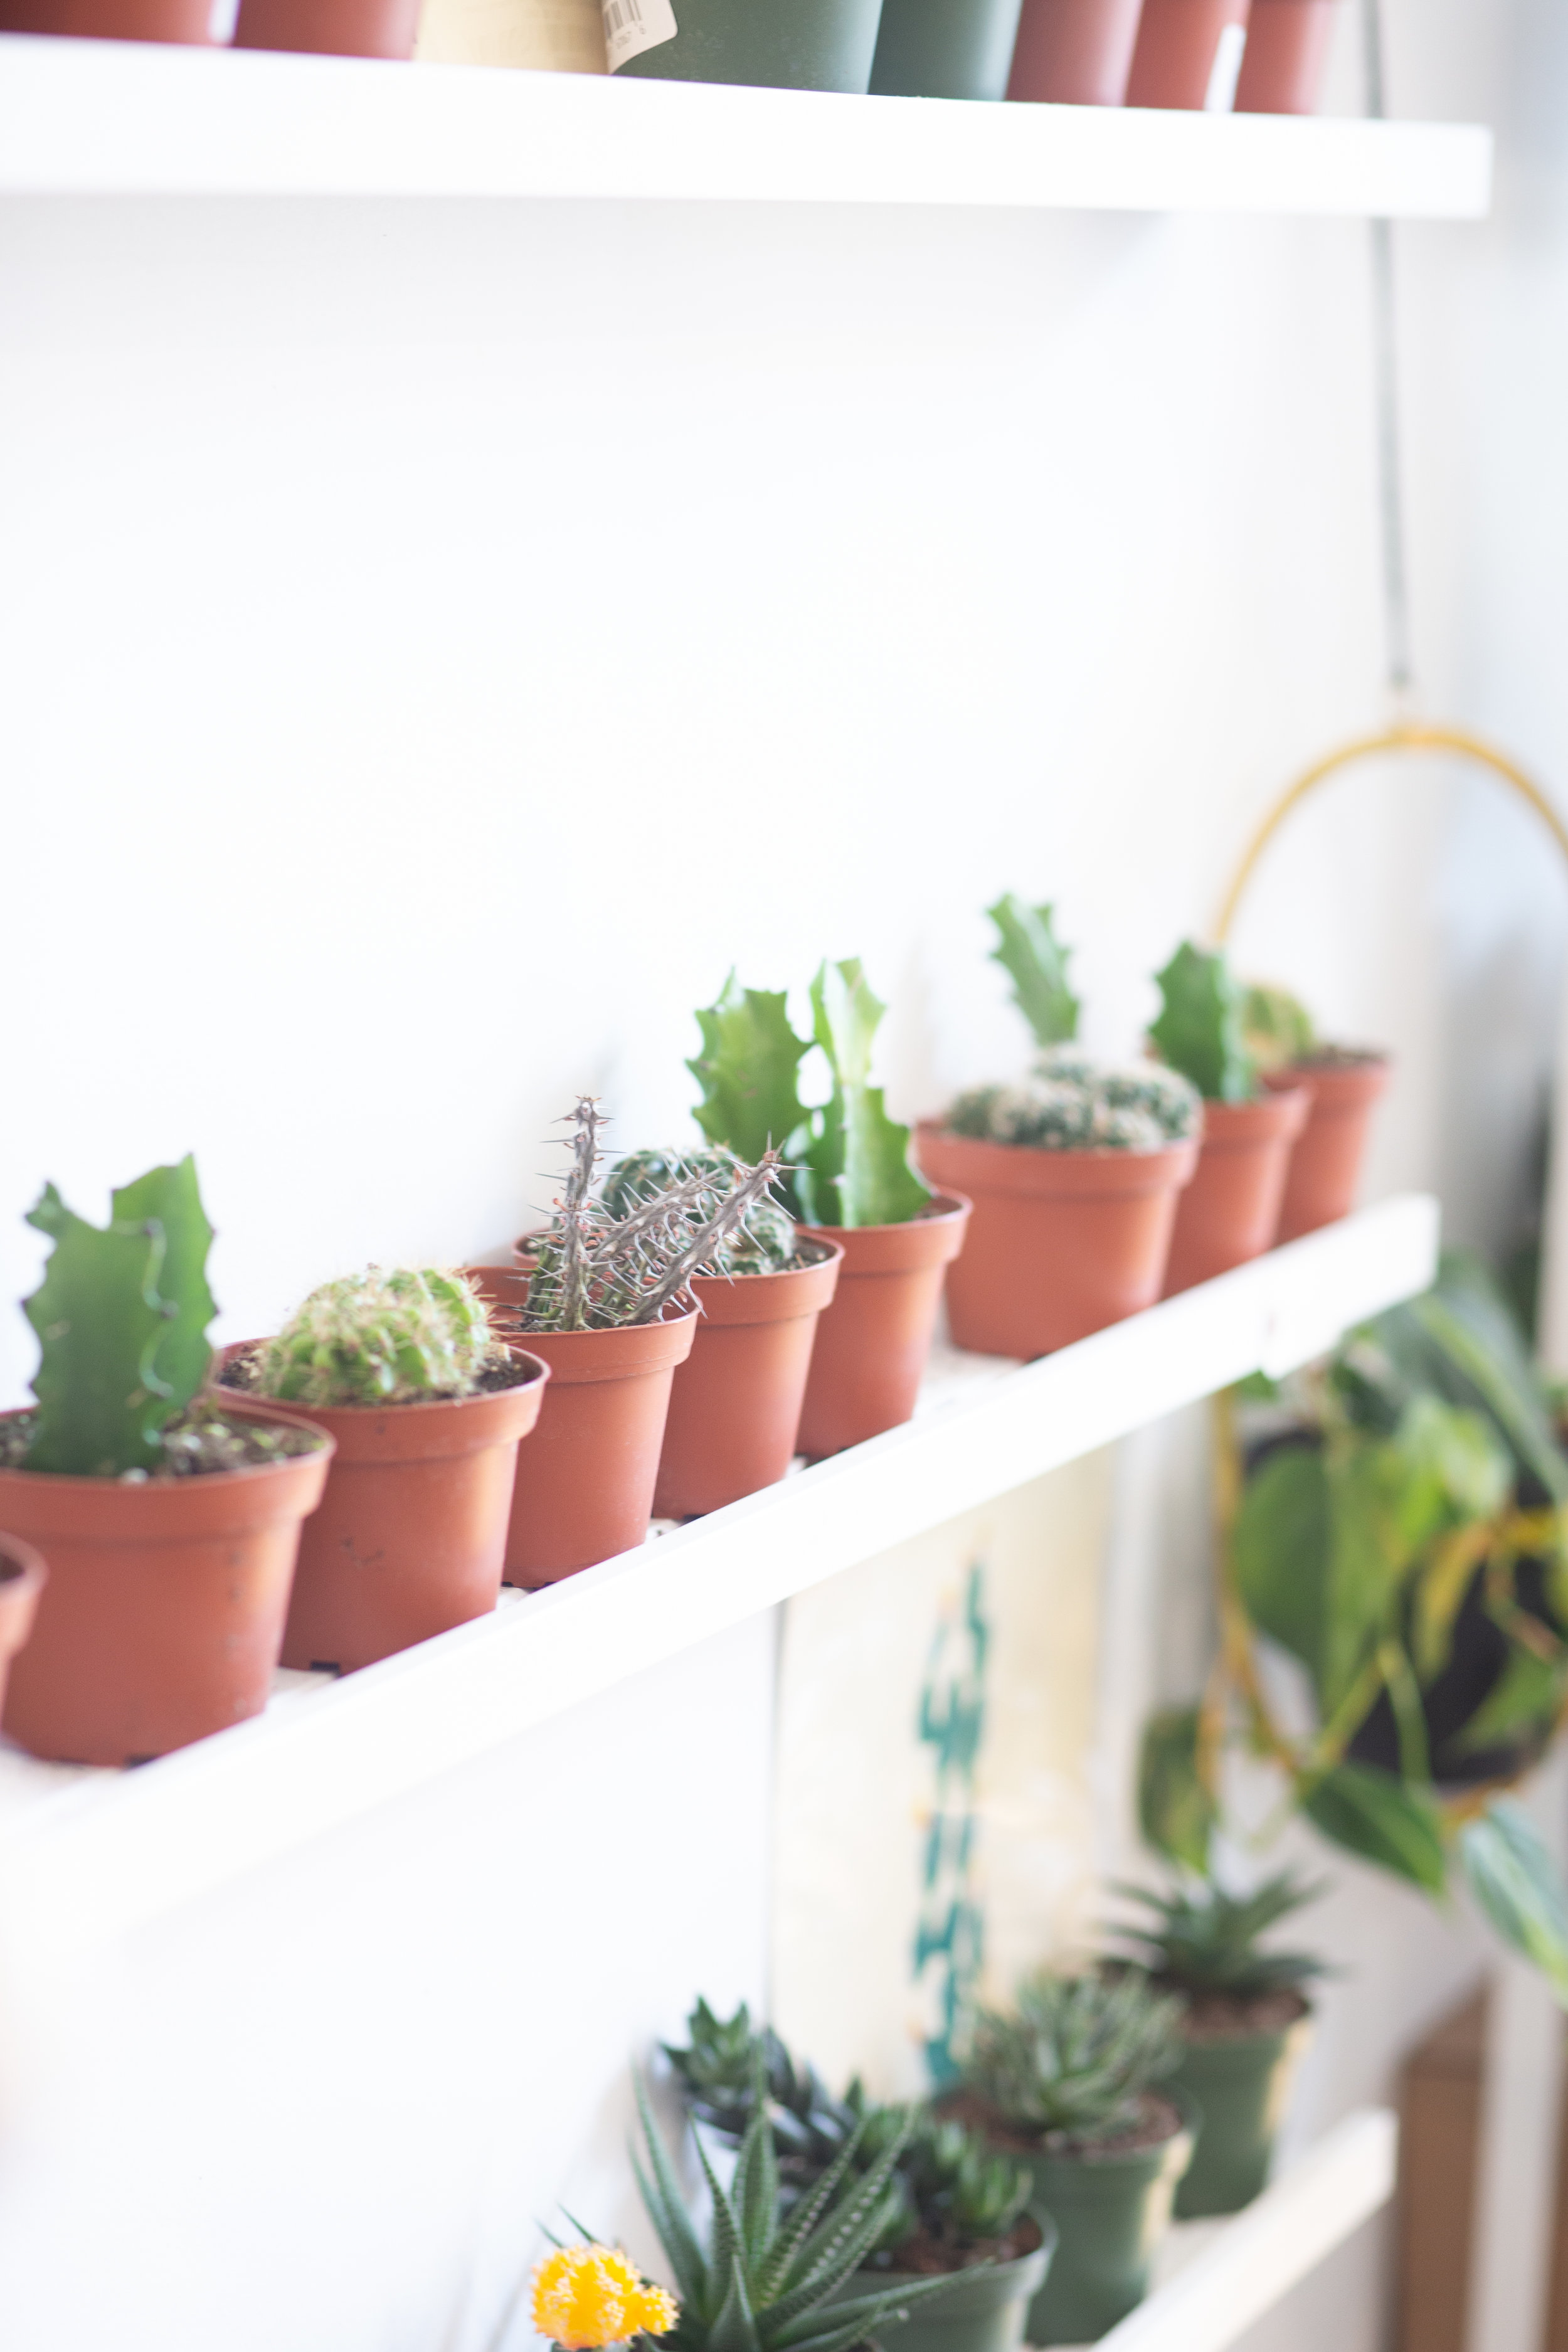 Cacti are adapted to hot days and cold nights, so they don't mind the temperature fluctuations in a centrally-heated home.